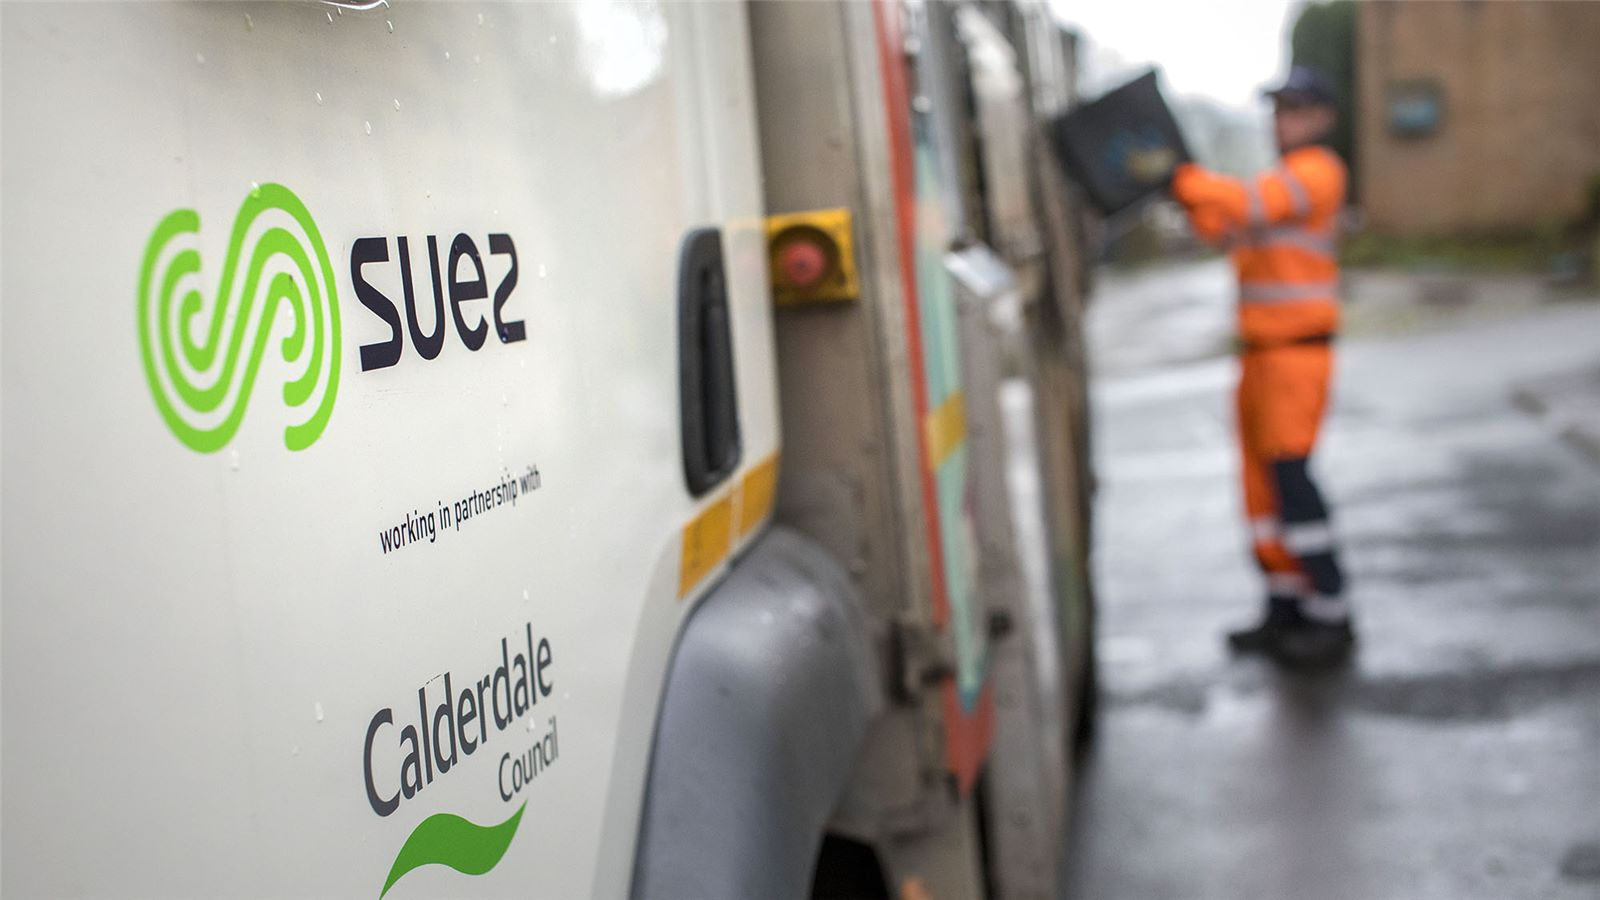 Calderdale municipal collection contract